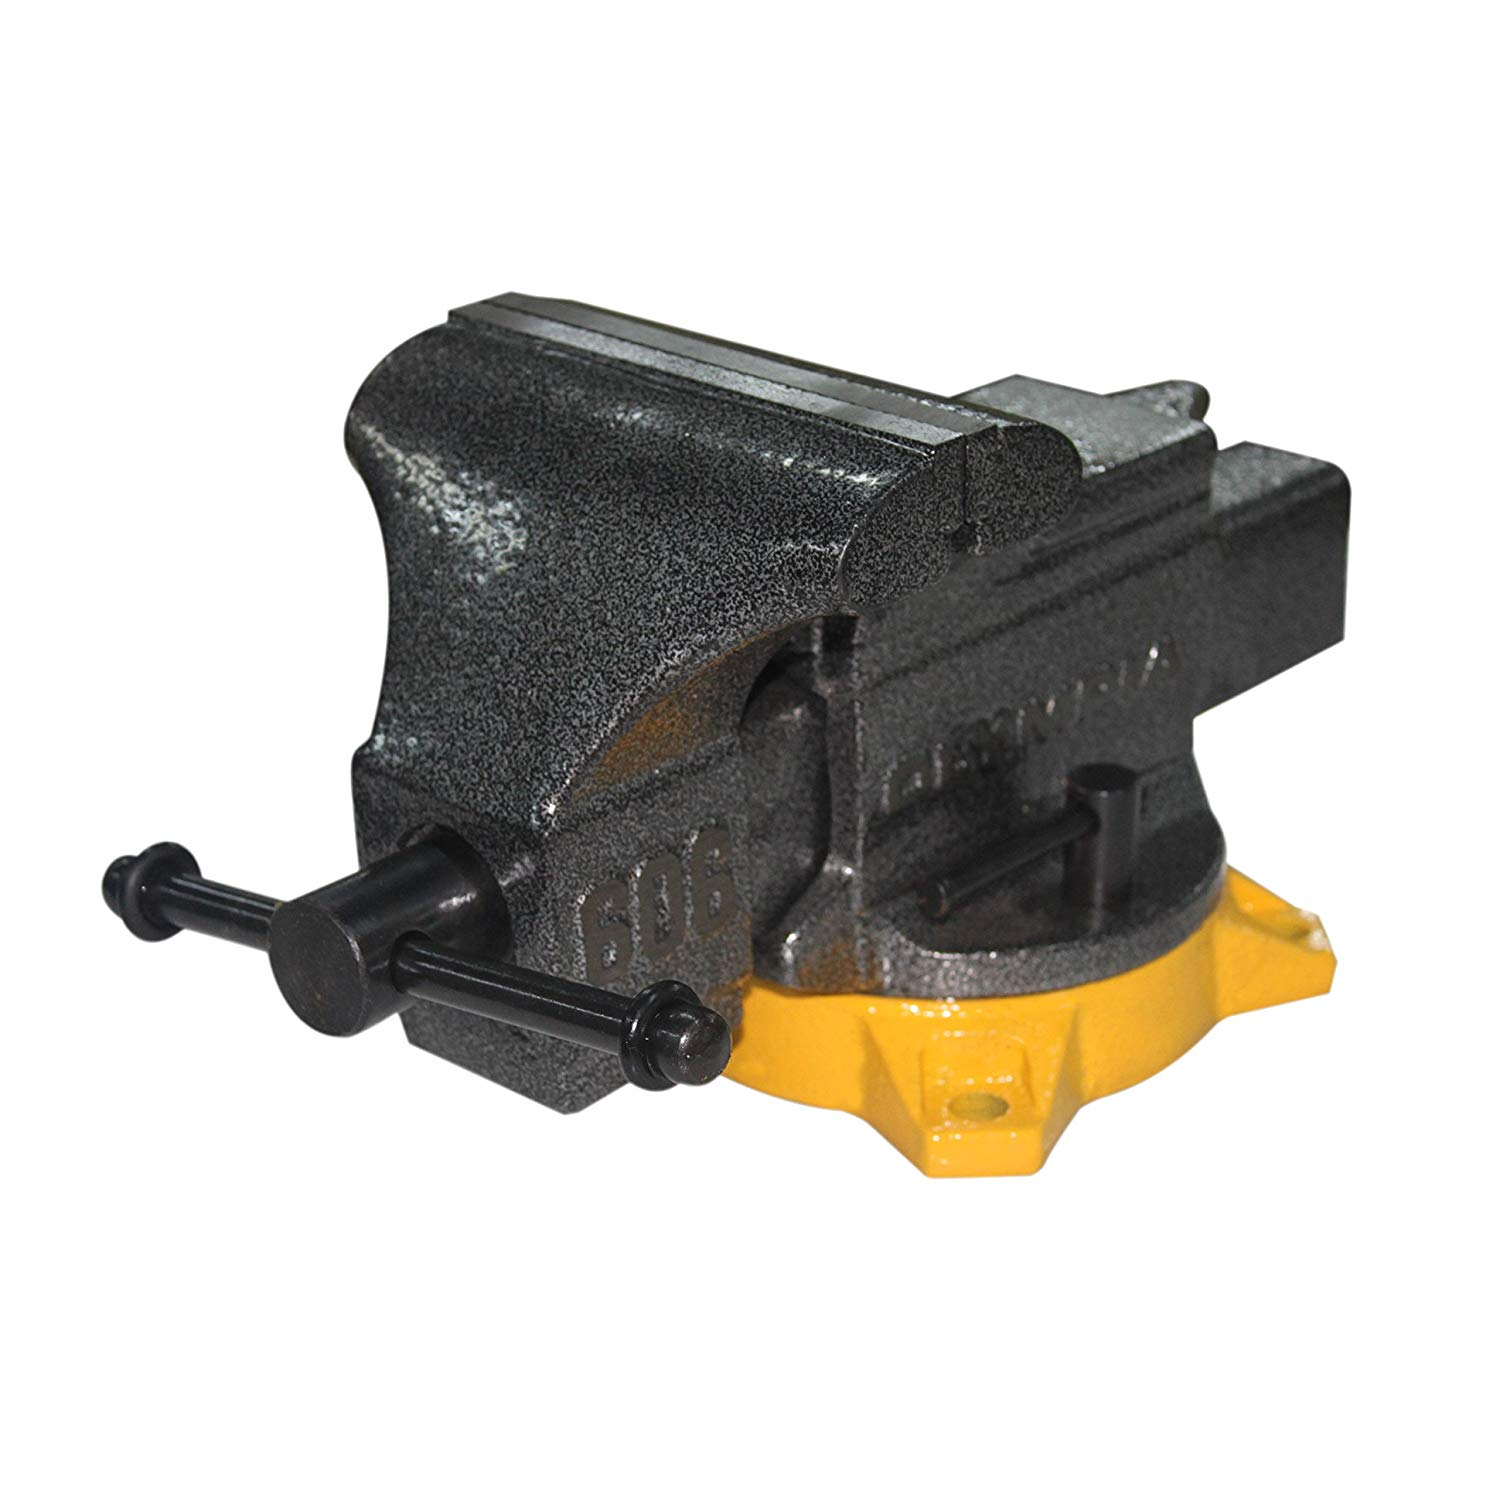 best bench vise - Olympia Tools 38-606